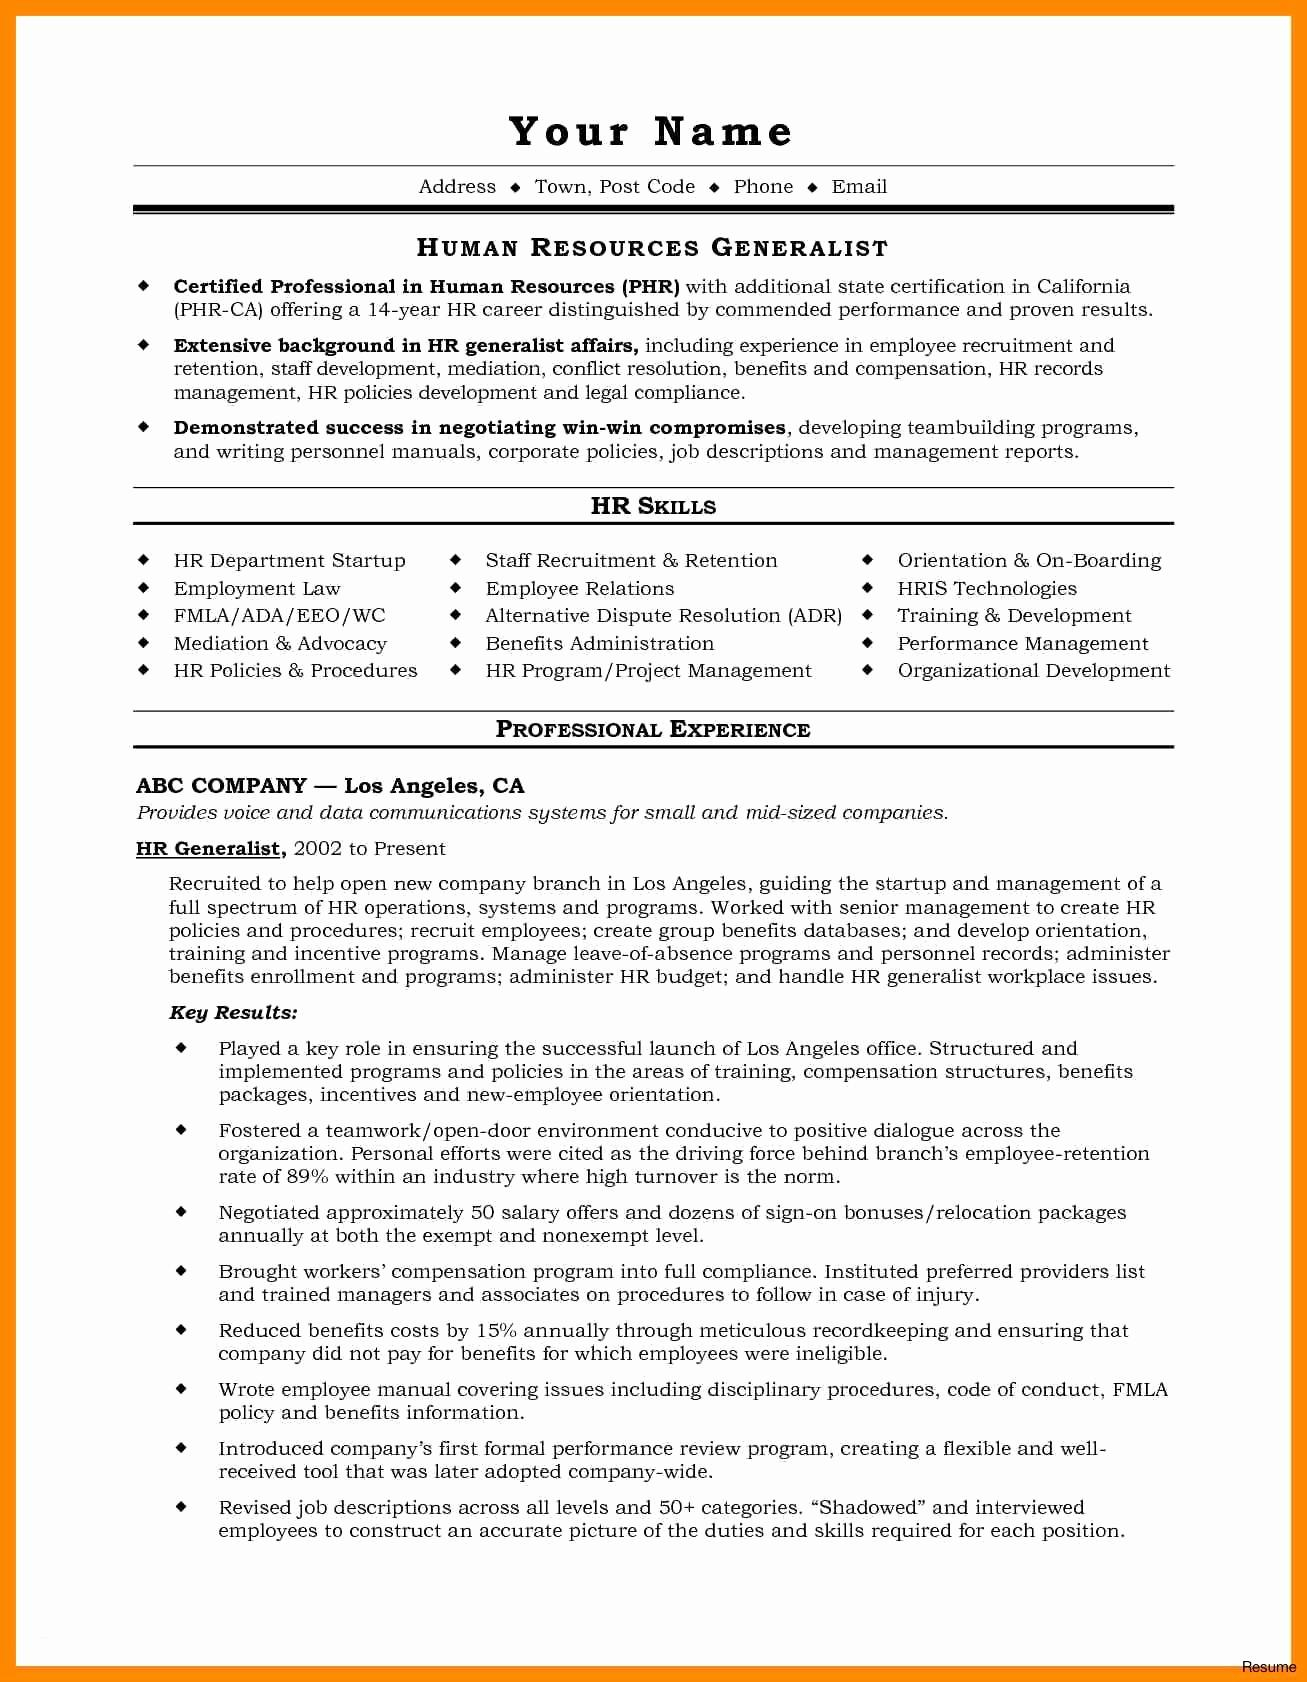 Picture Of A Resume - Resume Experience Example Fresh Resume for It Job Unique Best